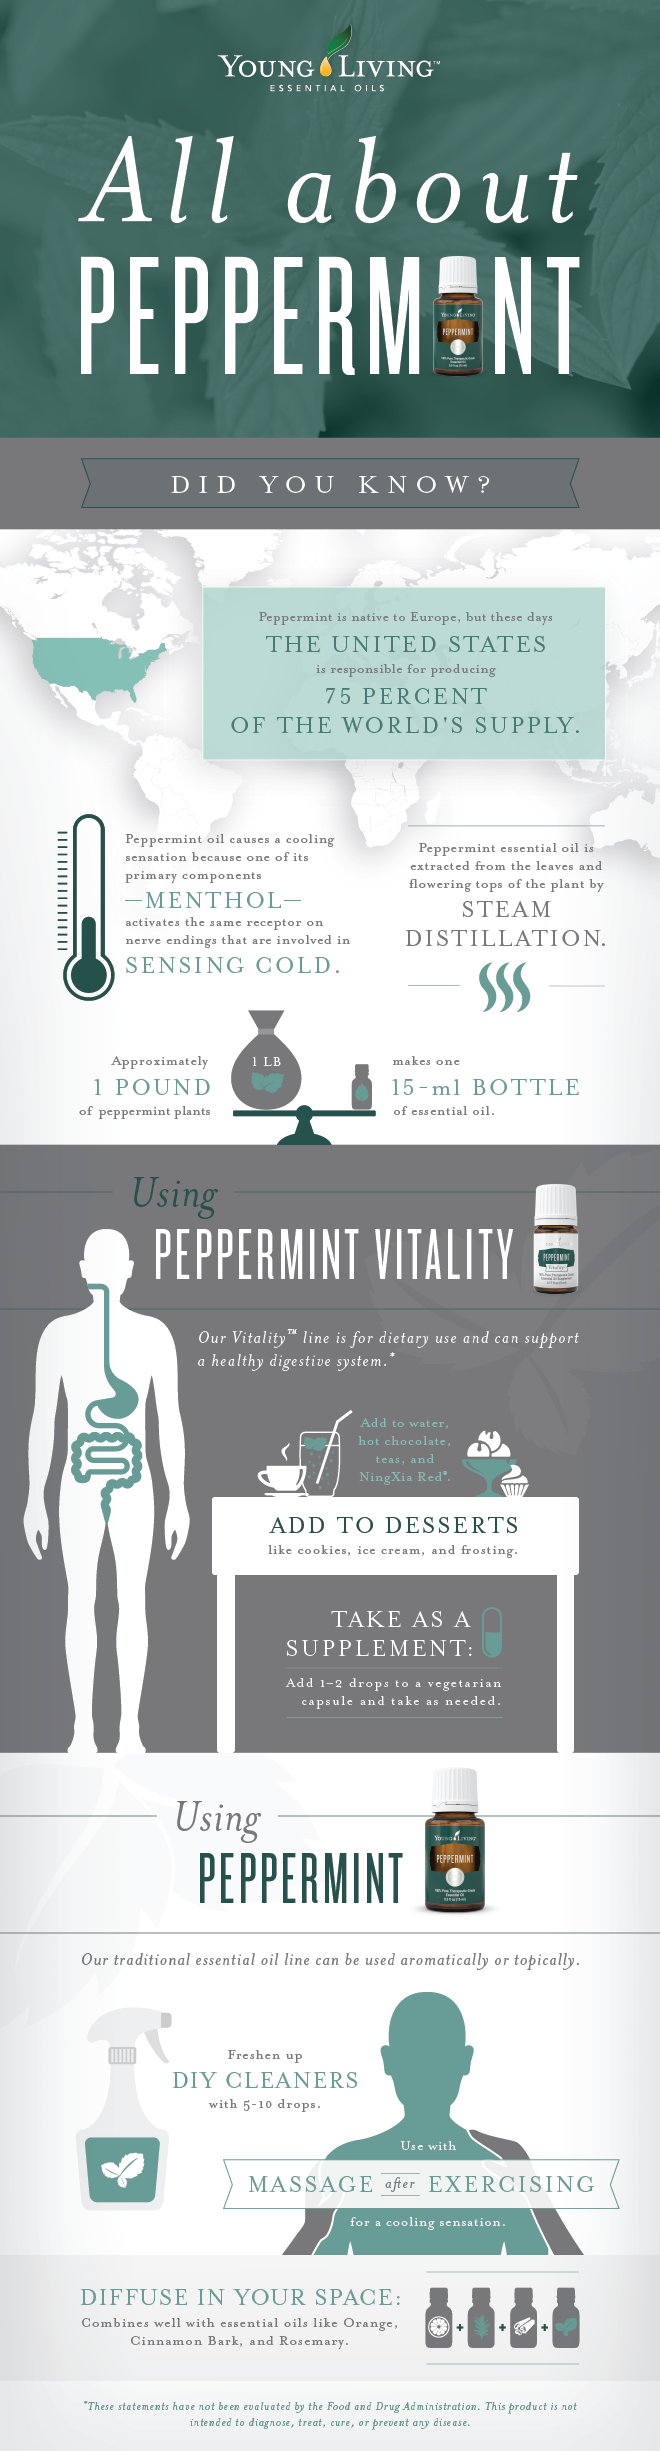 how to use peppermint essential oil for headaches